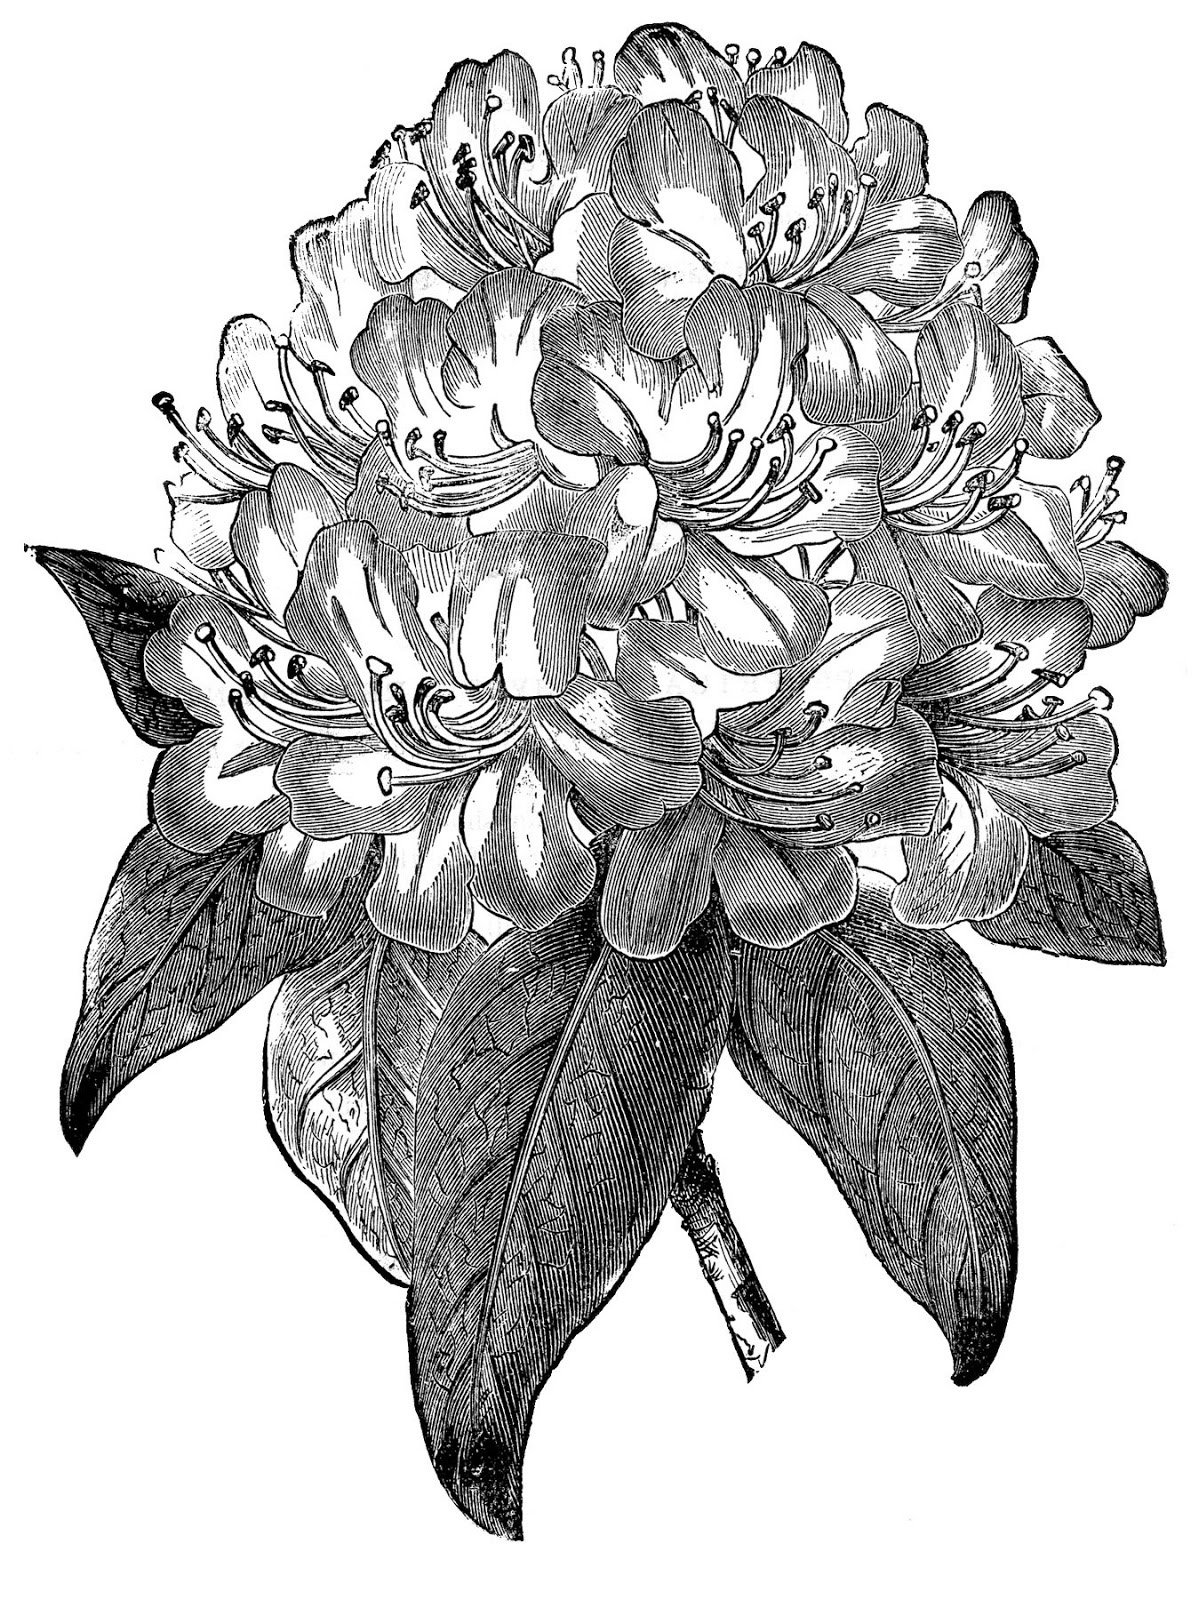 5 Rhododendron Images - Beautiful Flowers! - The Graphics ...